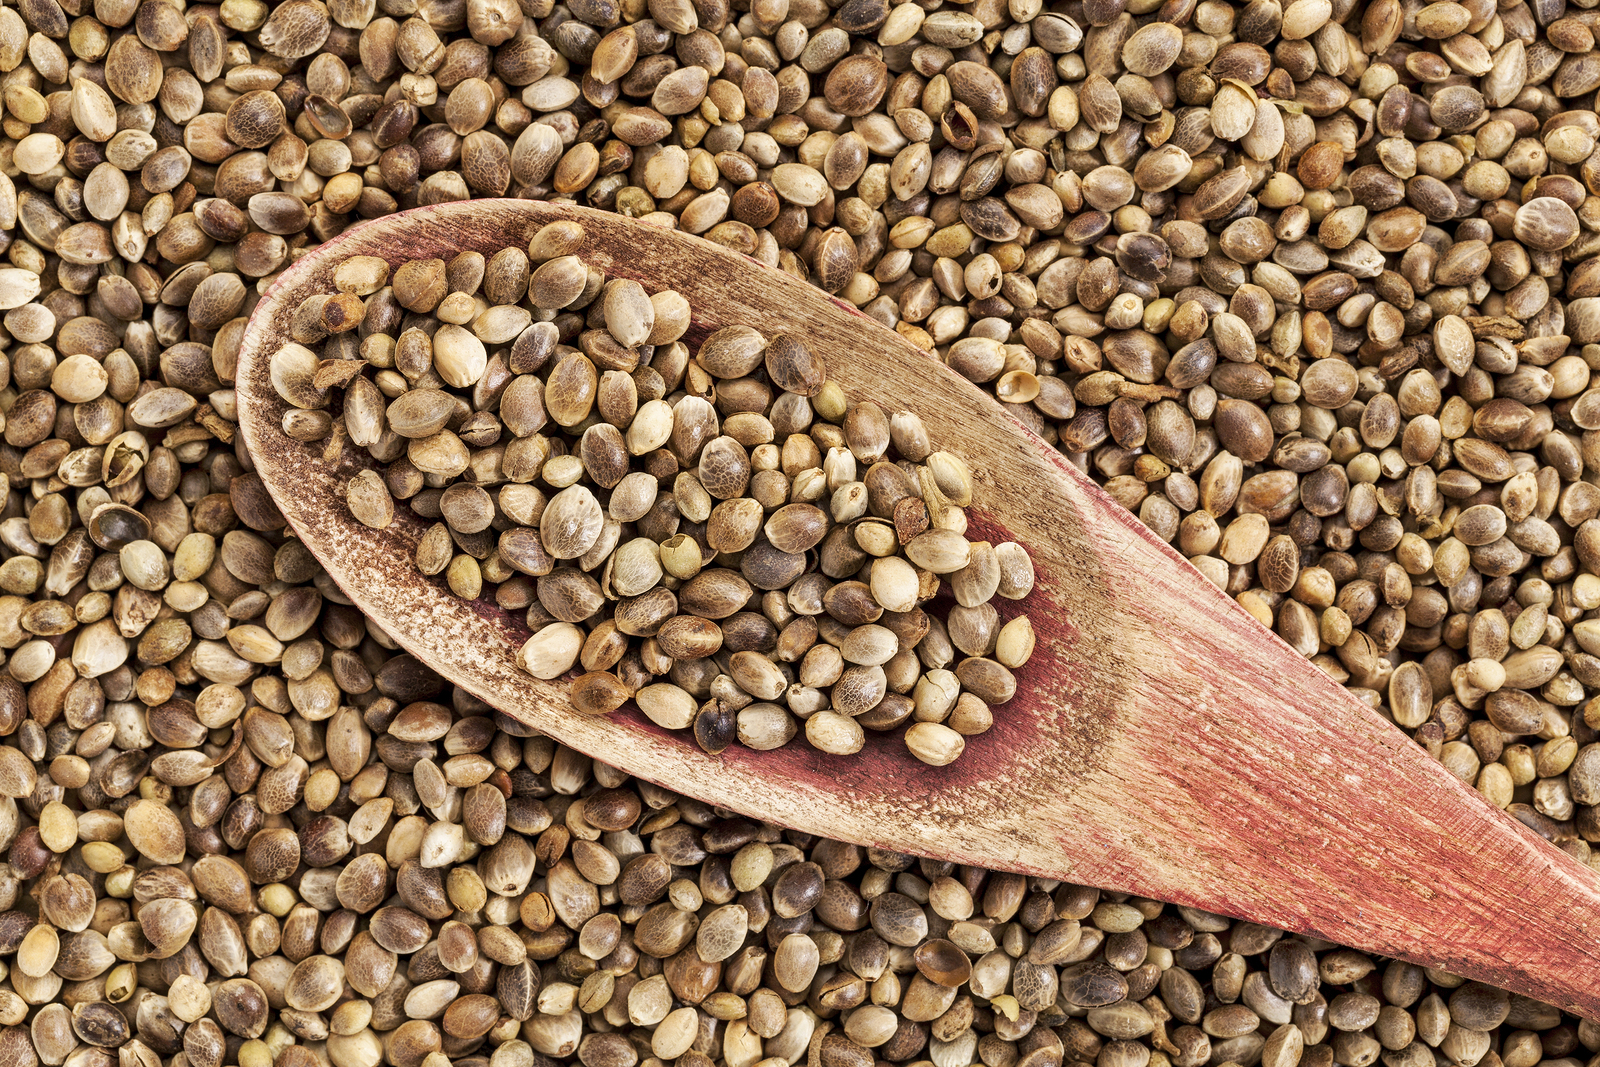 Laguna Blends Proves that Hemp Seeds are Not Just Another Health Fad